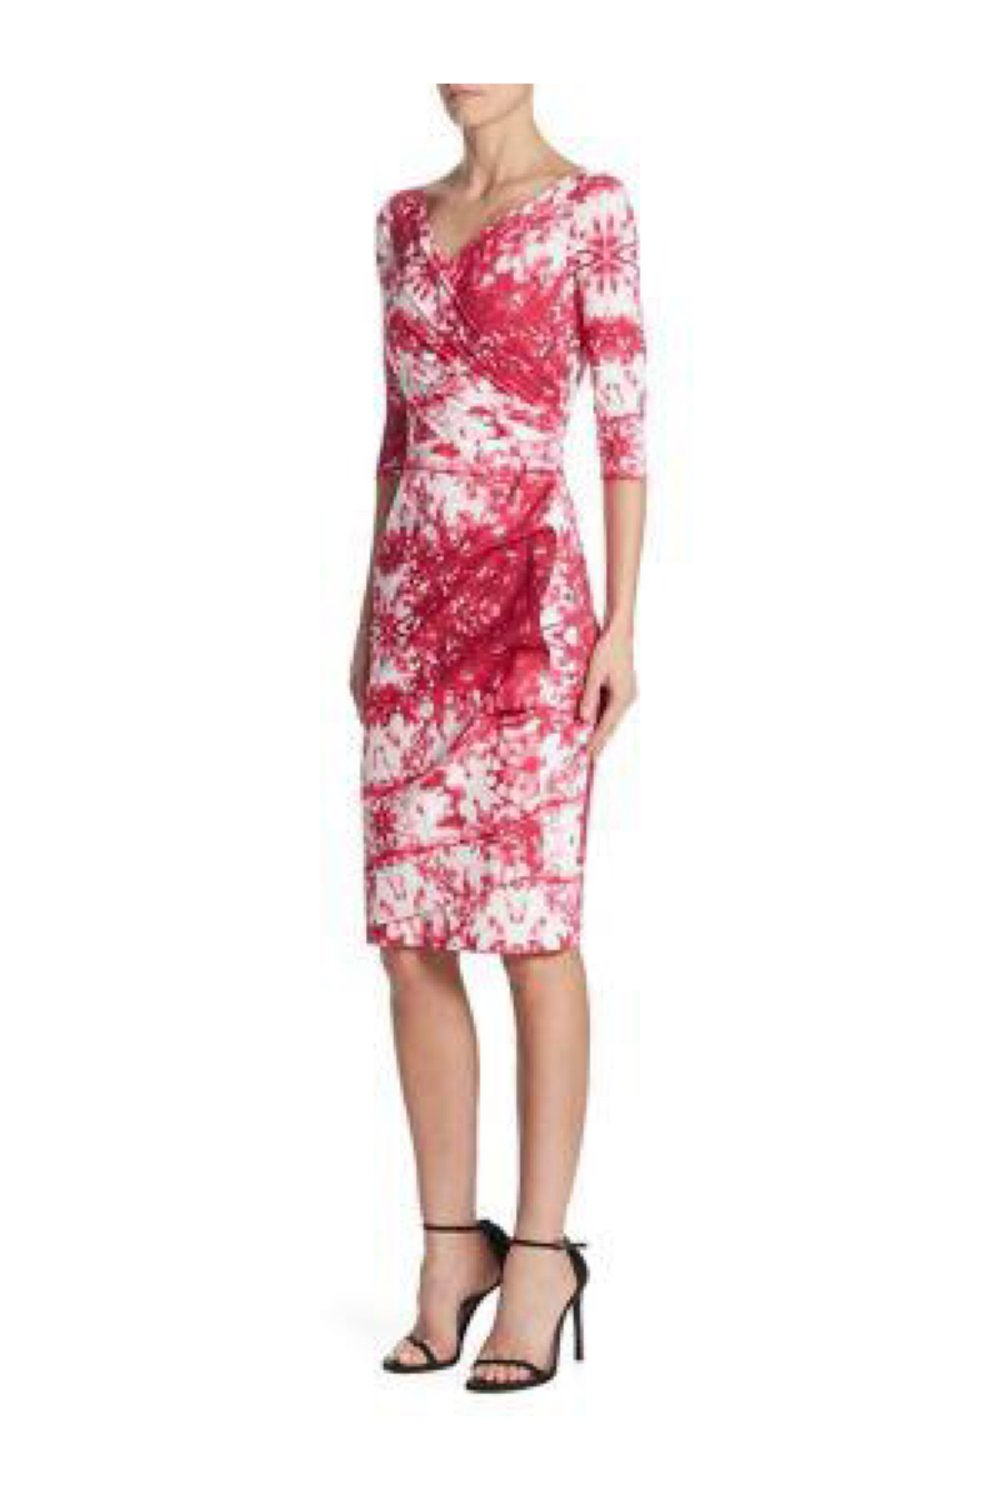 Briseide Off-the-Shoulder Printed Cocktail Dress - The Bobby Boga